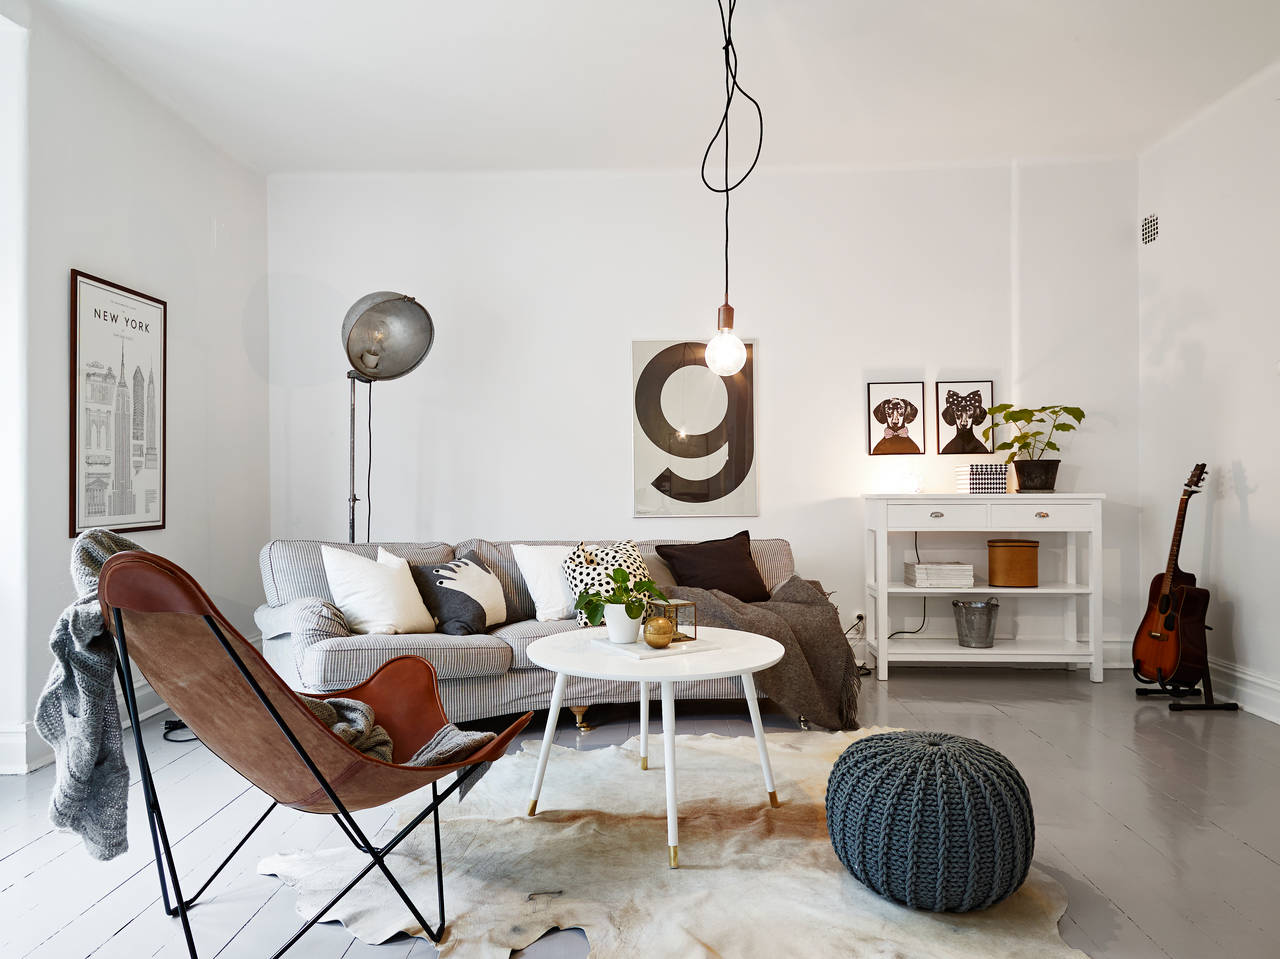 Cognac Woonkamer Home Tour Un Appartement Cocooning Mademoiselle